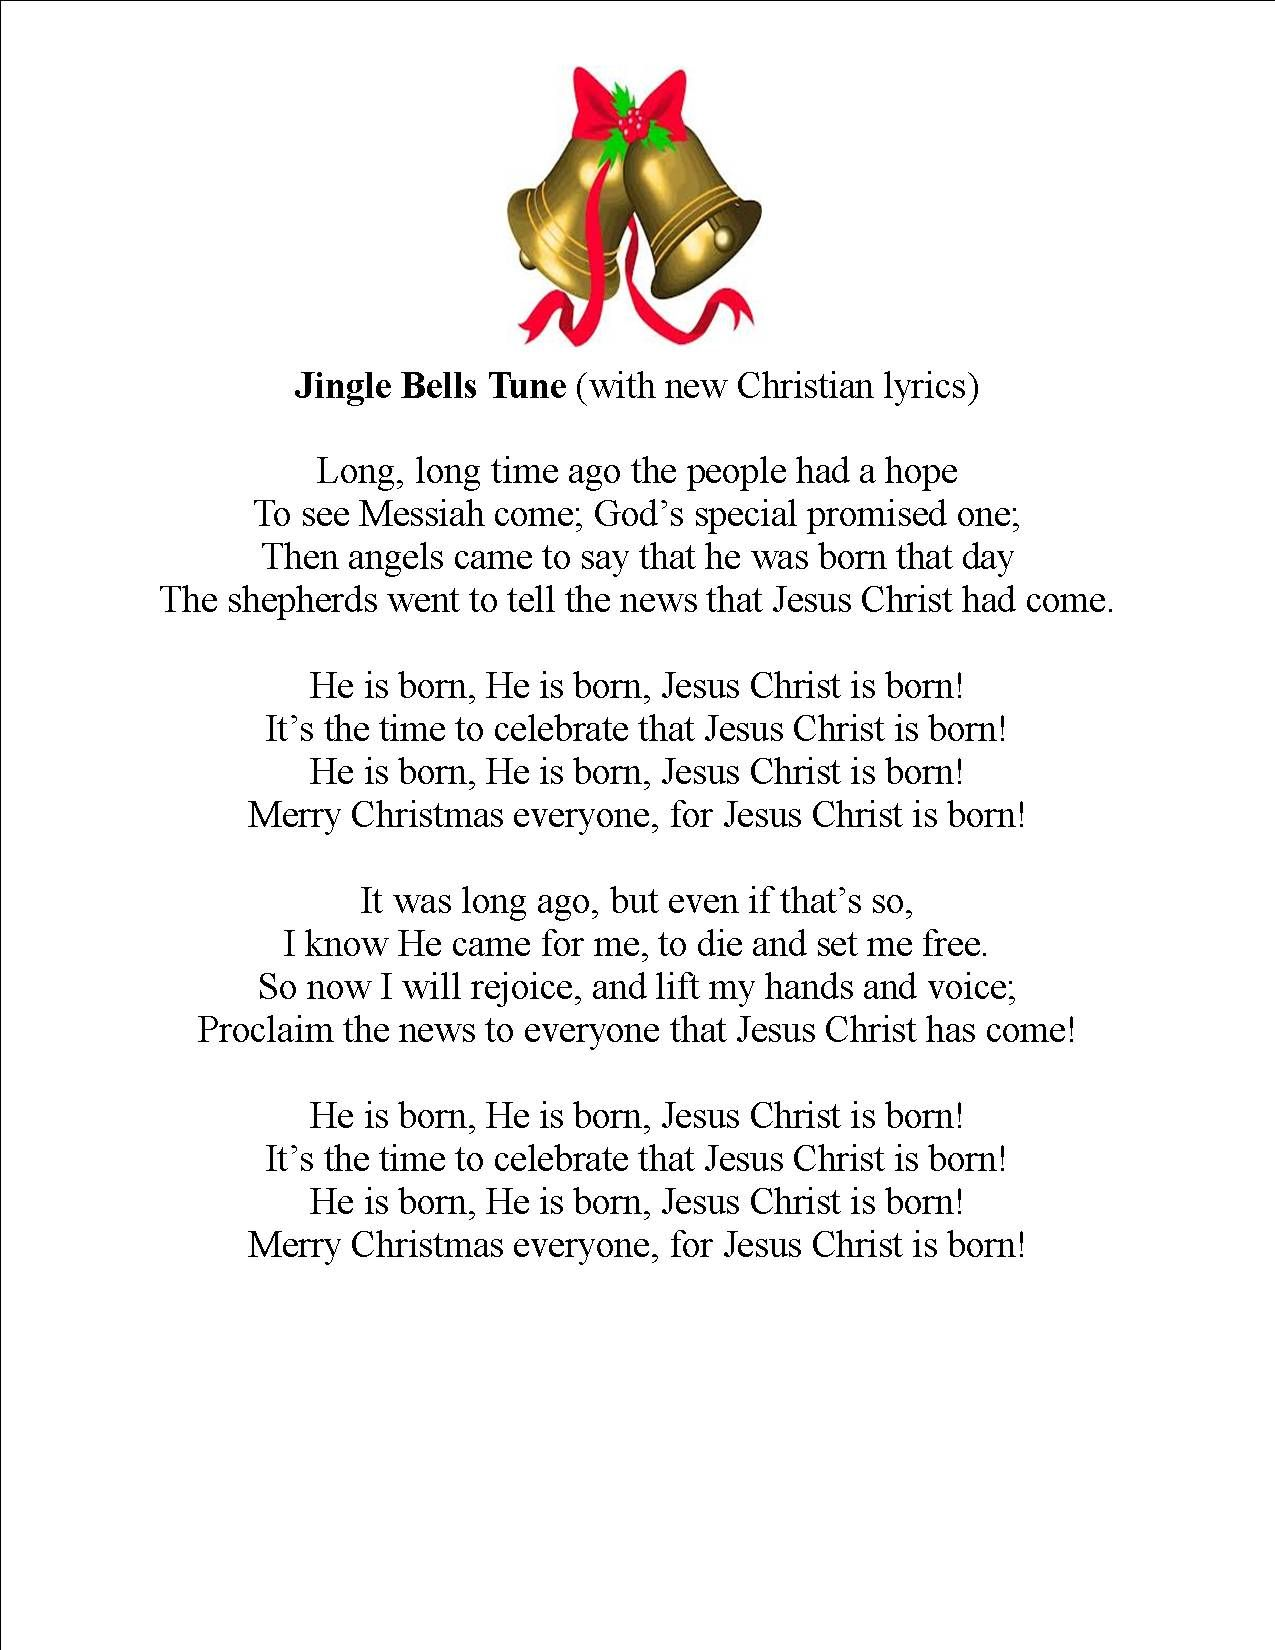 He Is Born New Lyrics To The Popular Tune Of Jingle Bells I Wrote This For My Church S Children S Christmas Poems Christmas Skits Christmas Songs Lyrics